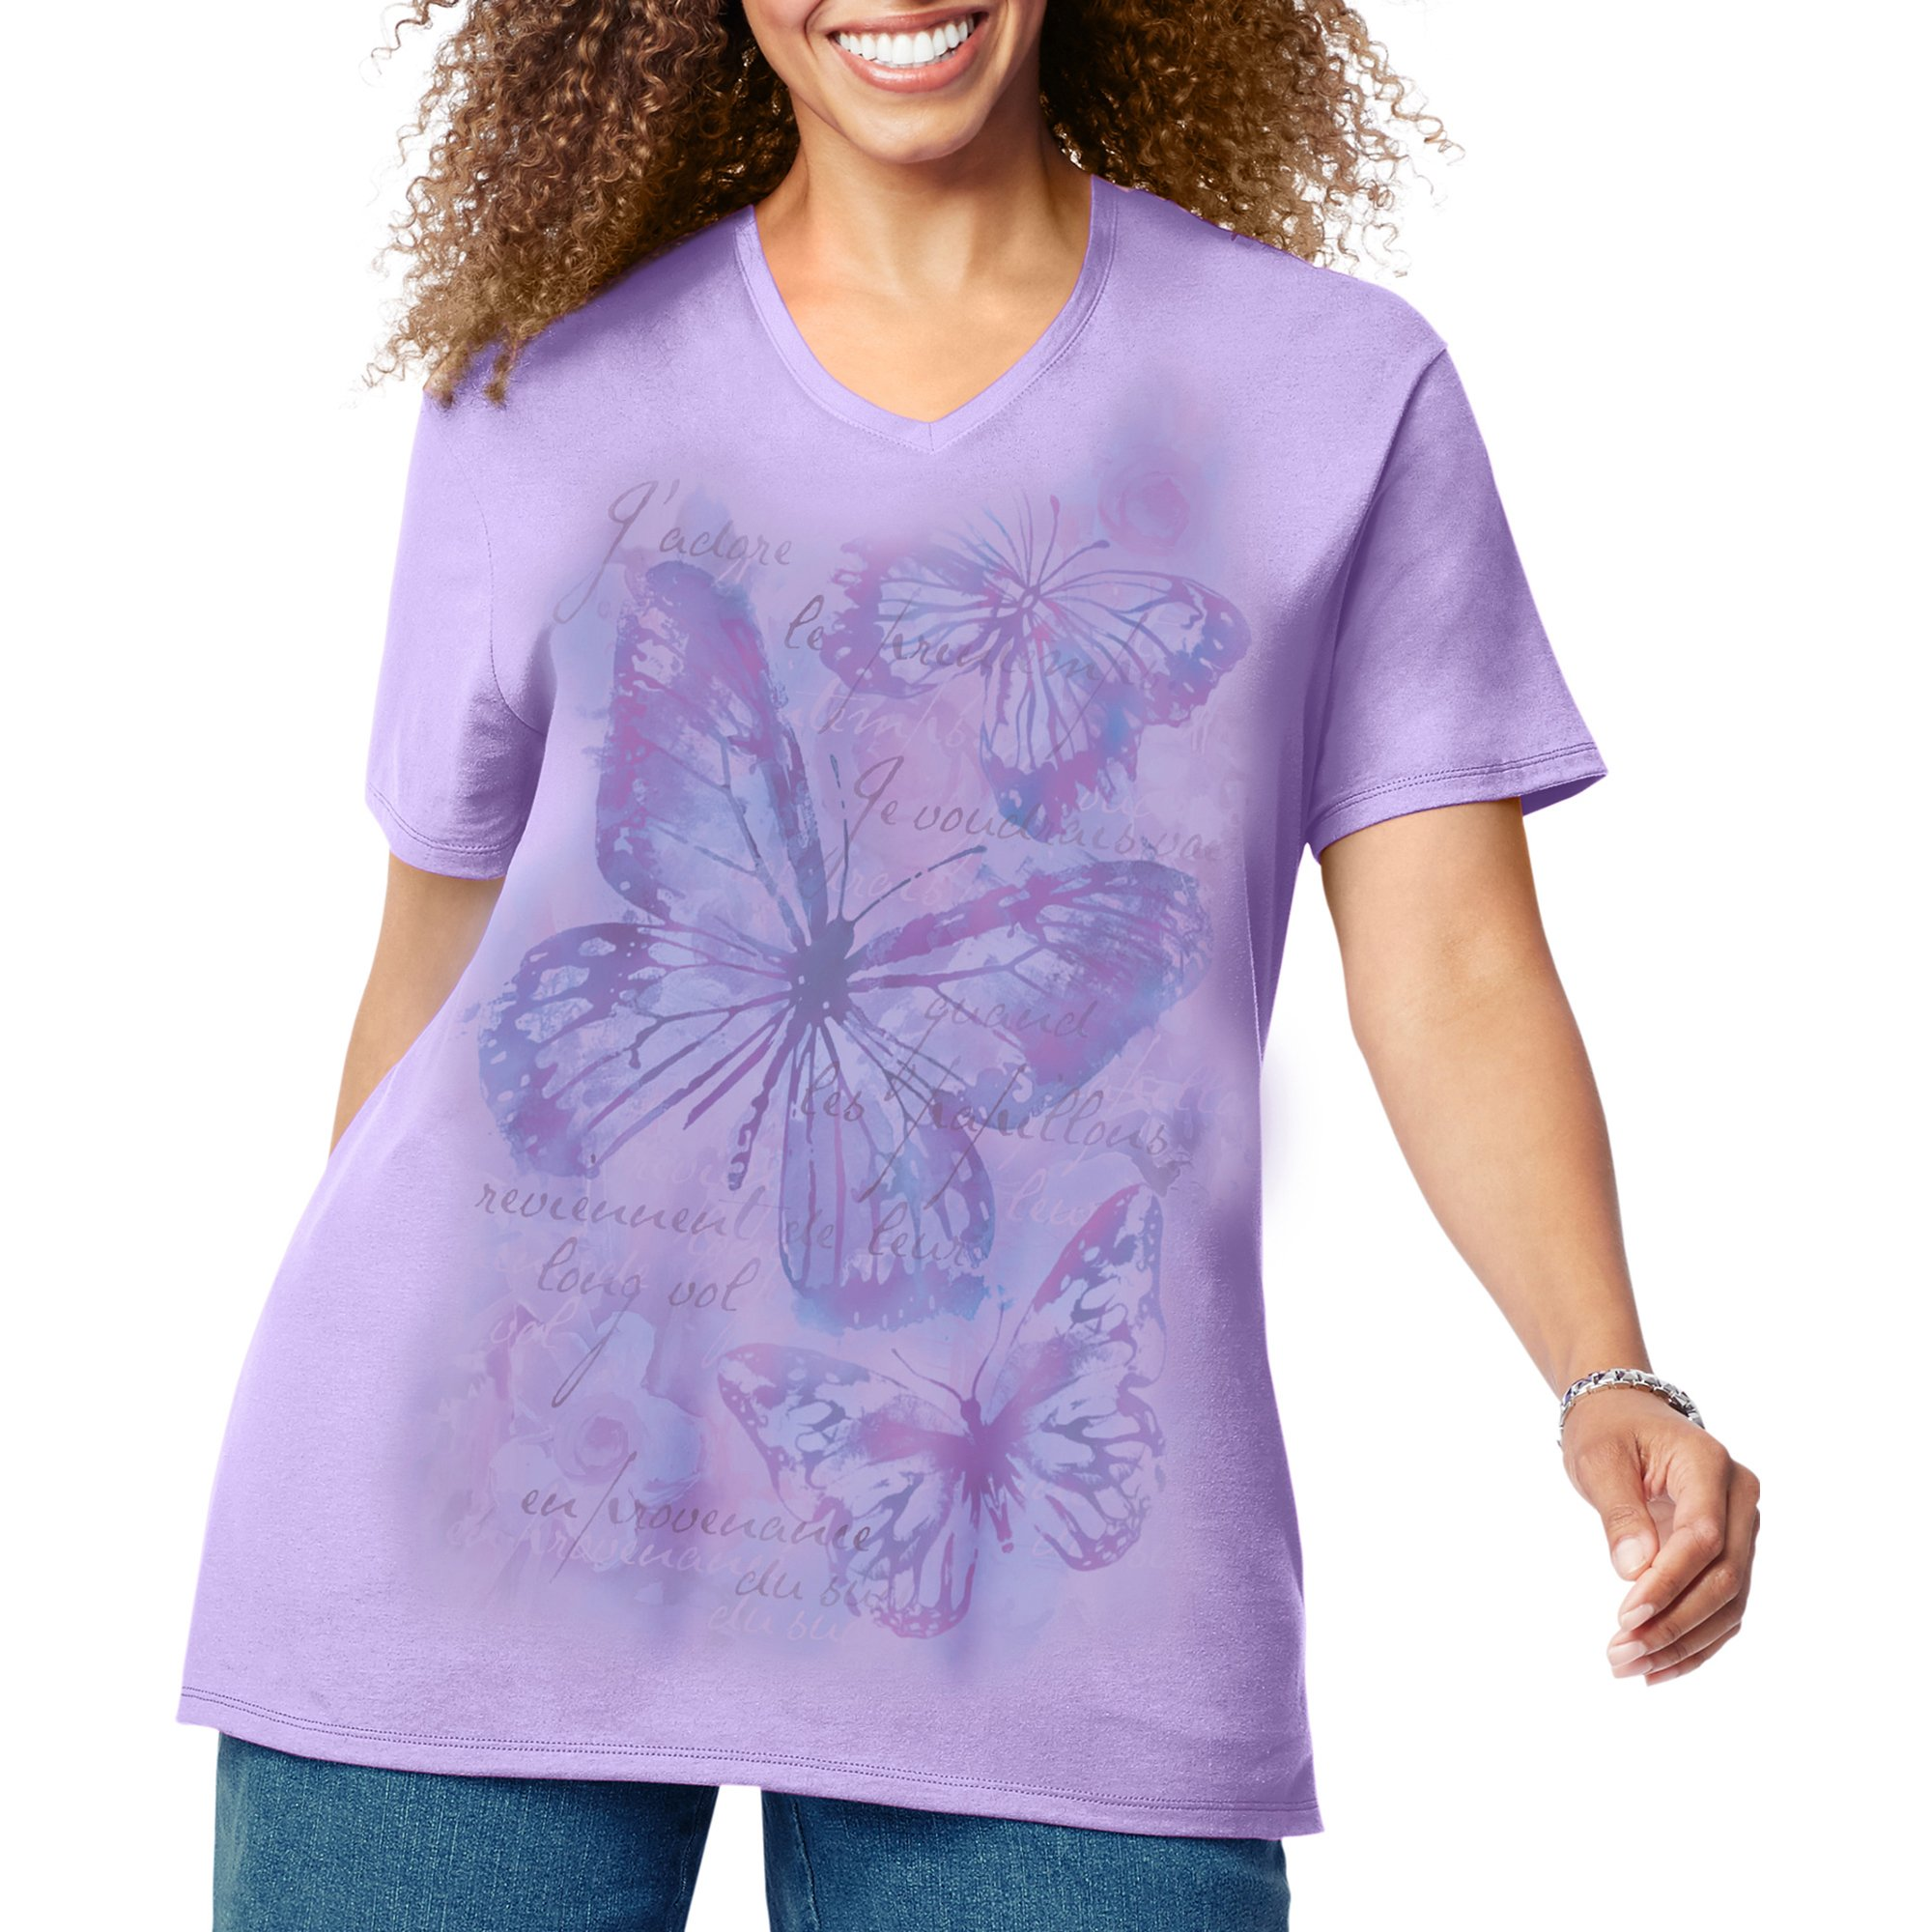 46c2007c4d853 Just My Size Women s Size Plus Printed Short-Sleeve V-Neck T-Shirt ...